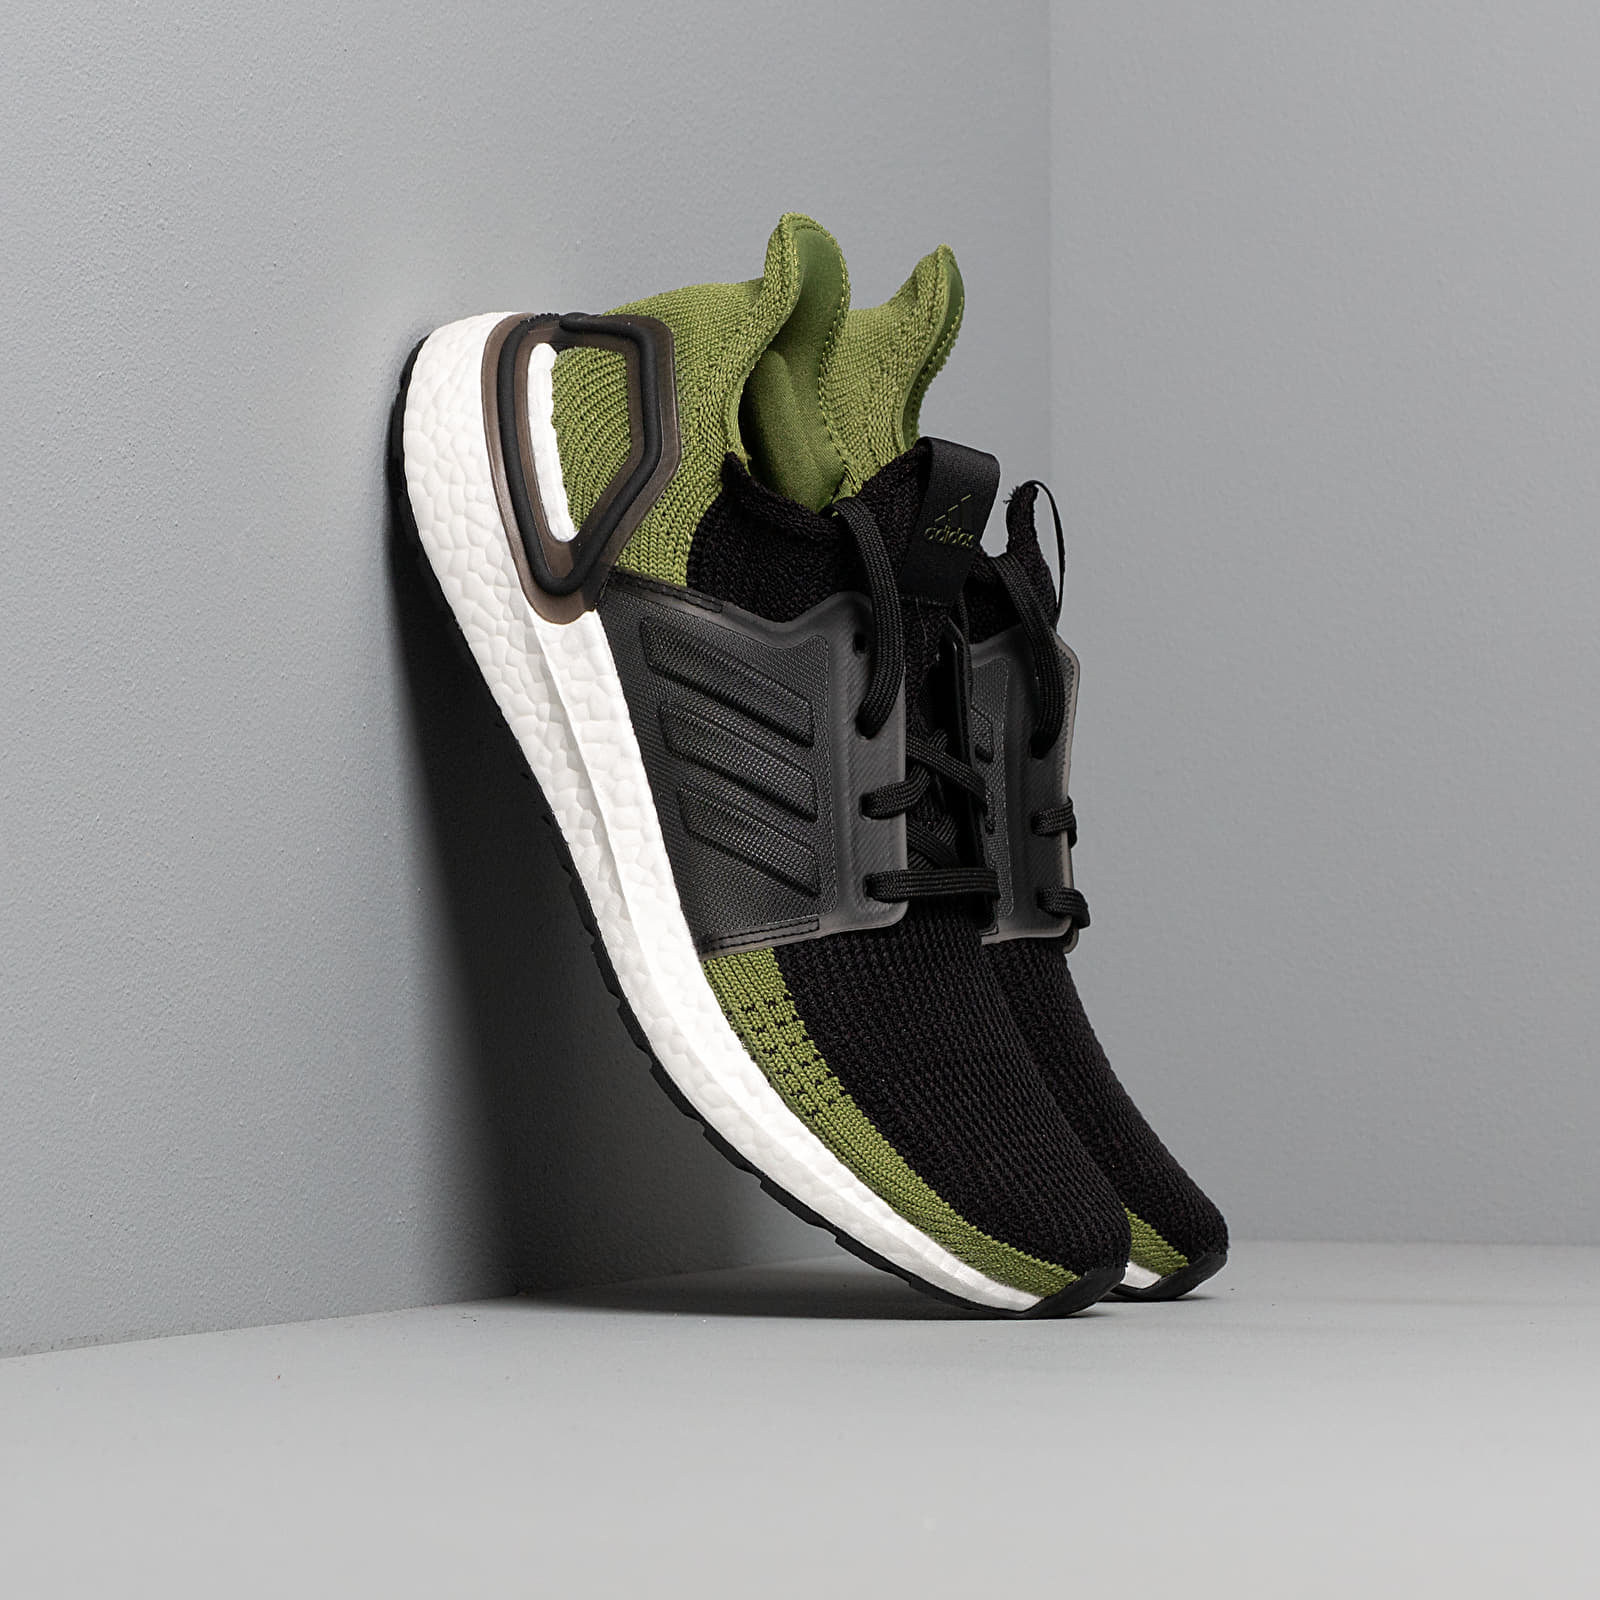 Men's shoes adidas UltraBOOST 19 m Core Black/ Core Black/ Tech Olive